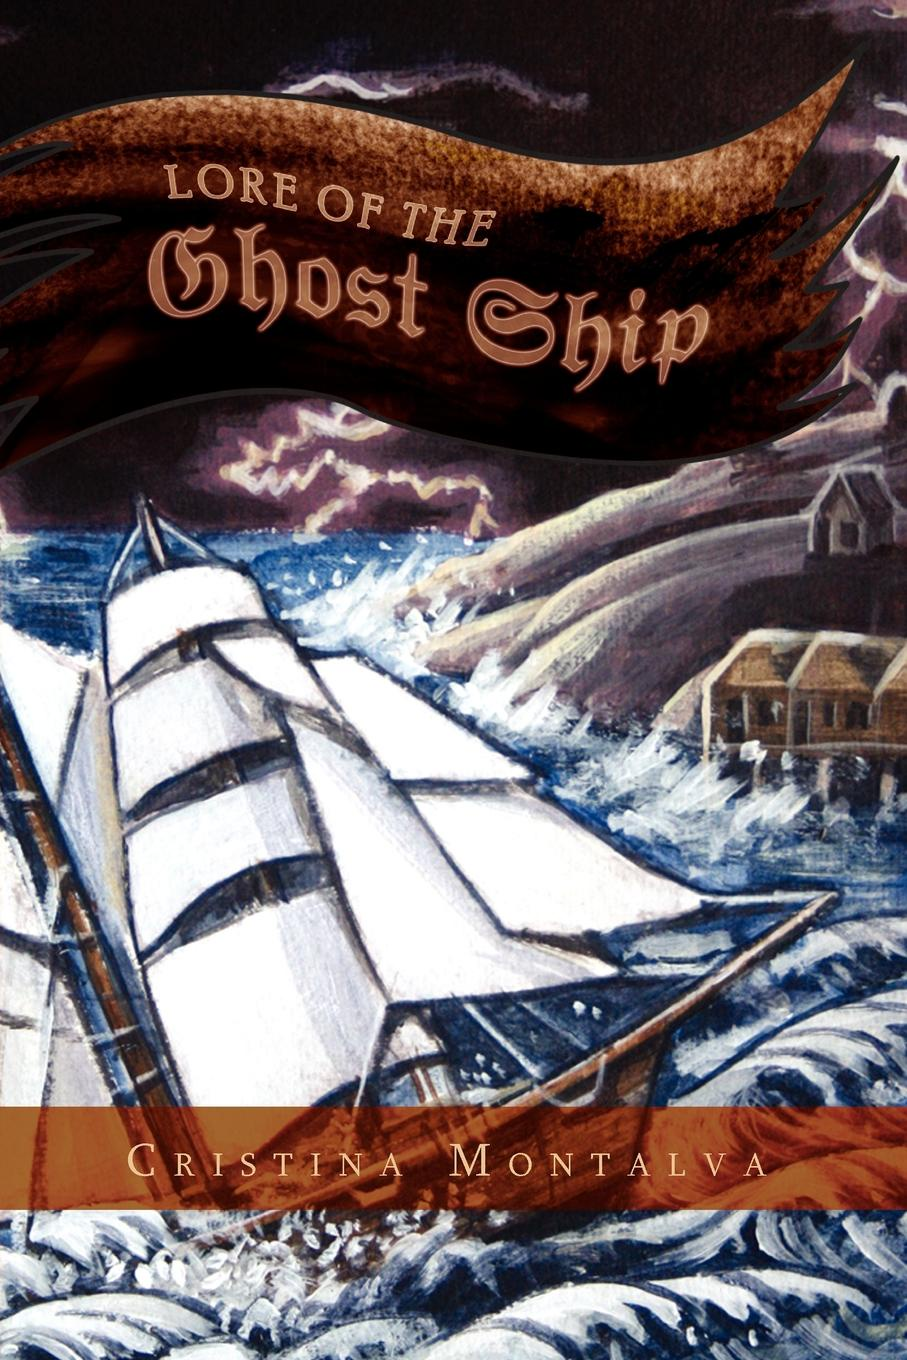 Cristina Montalva Lore of the Ghost Ship